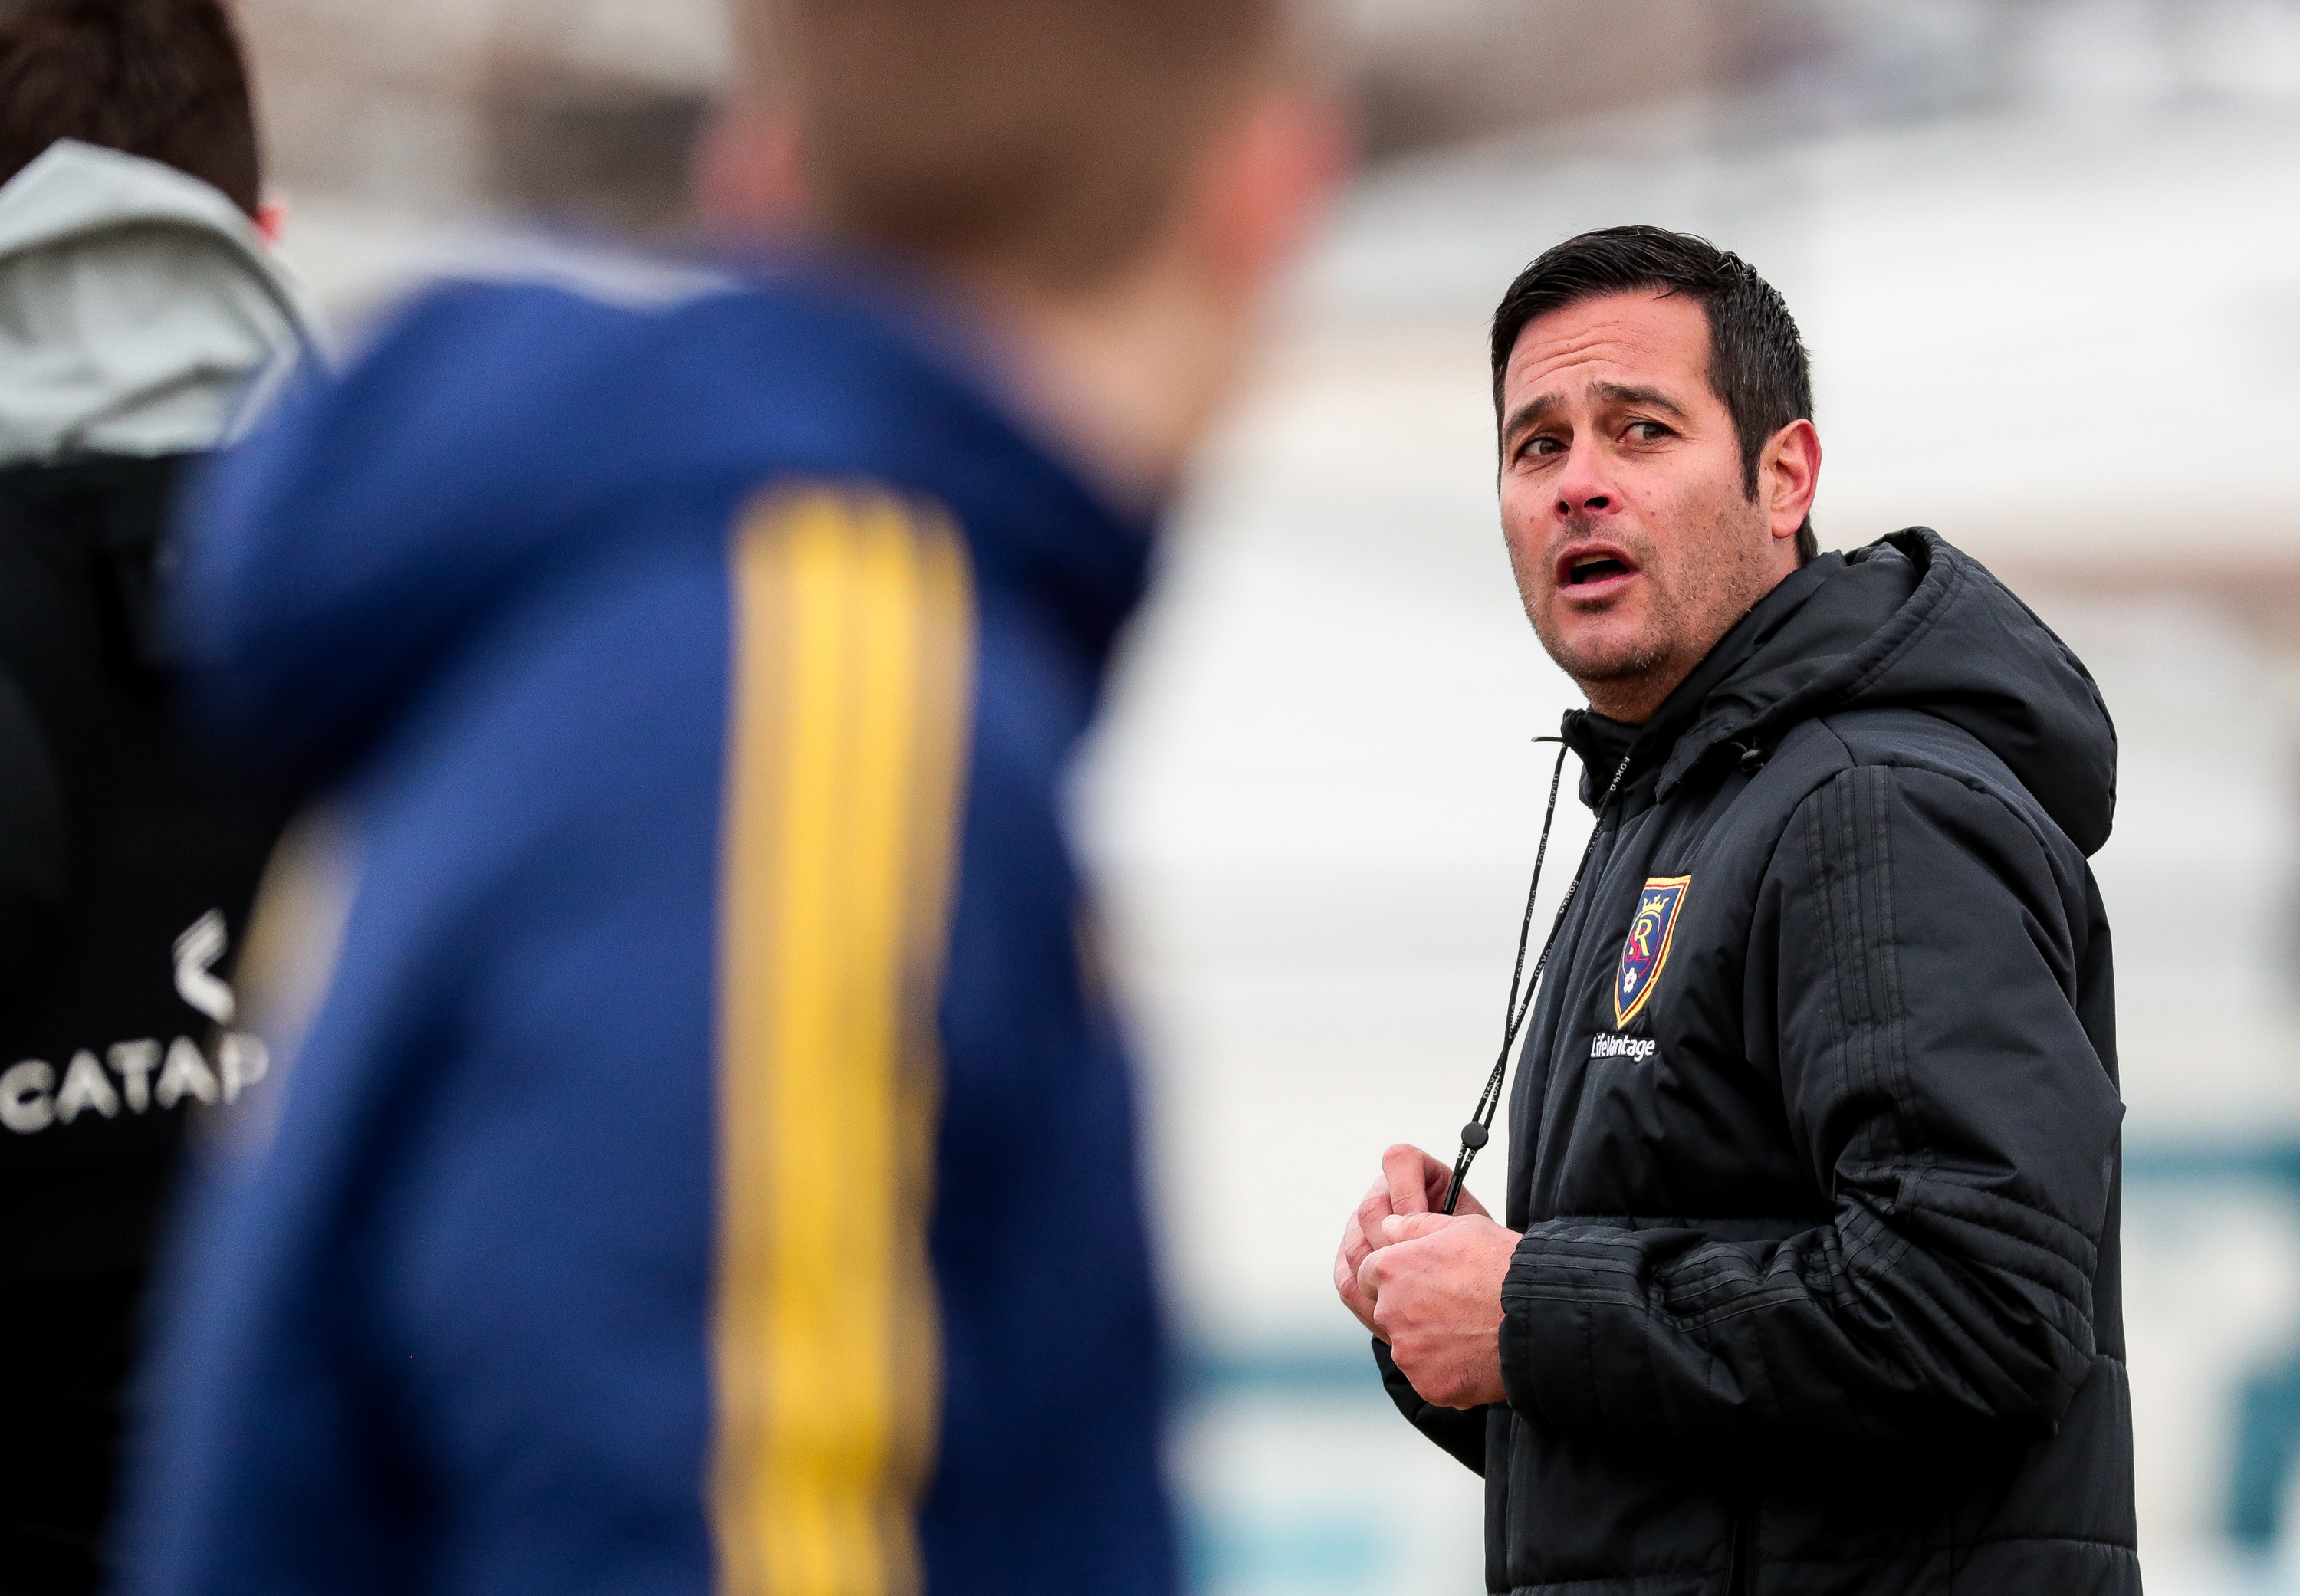 Head coach Mike Petke directs players during a Real Salt Lake practice at America First Field in Sandy on Thursday, Feb. 28, 2019. RSL hosts Vancouver in its home opener on Saturday at Rio Tinto Stadium.